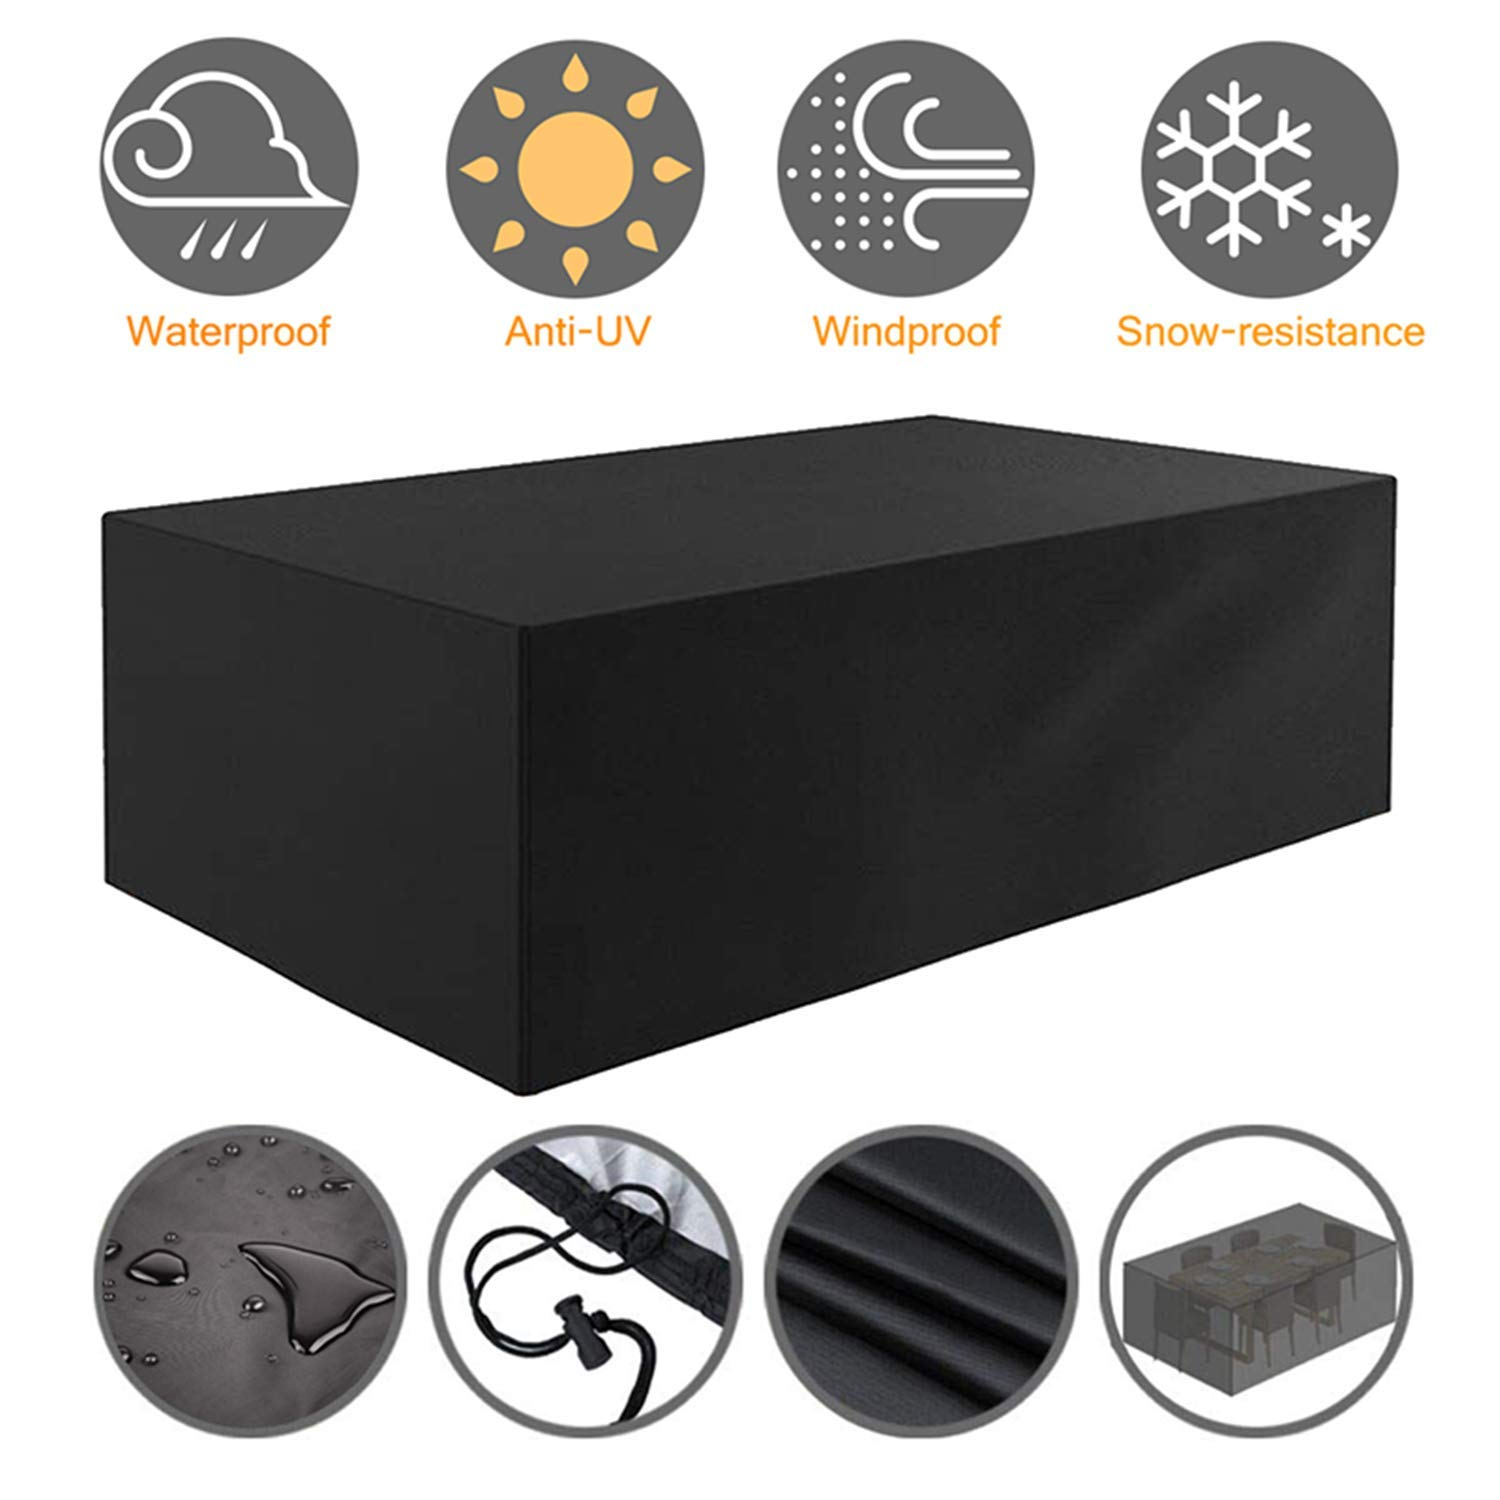 Tvird Patio Furniture Cover Outdoor Table and Chair cover,600D Heavy Duty Oxford Fabric Garden Furniture Covers Waterproof Furniture Set Covers Windproof Dust Proof Protective 242 x 162 x 100 cm(Black